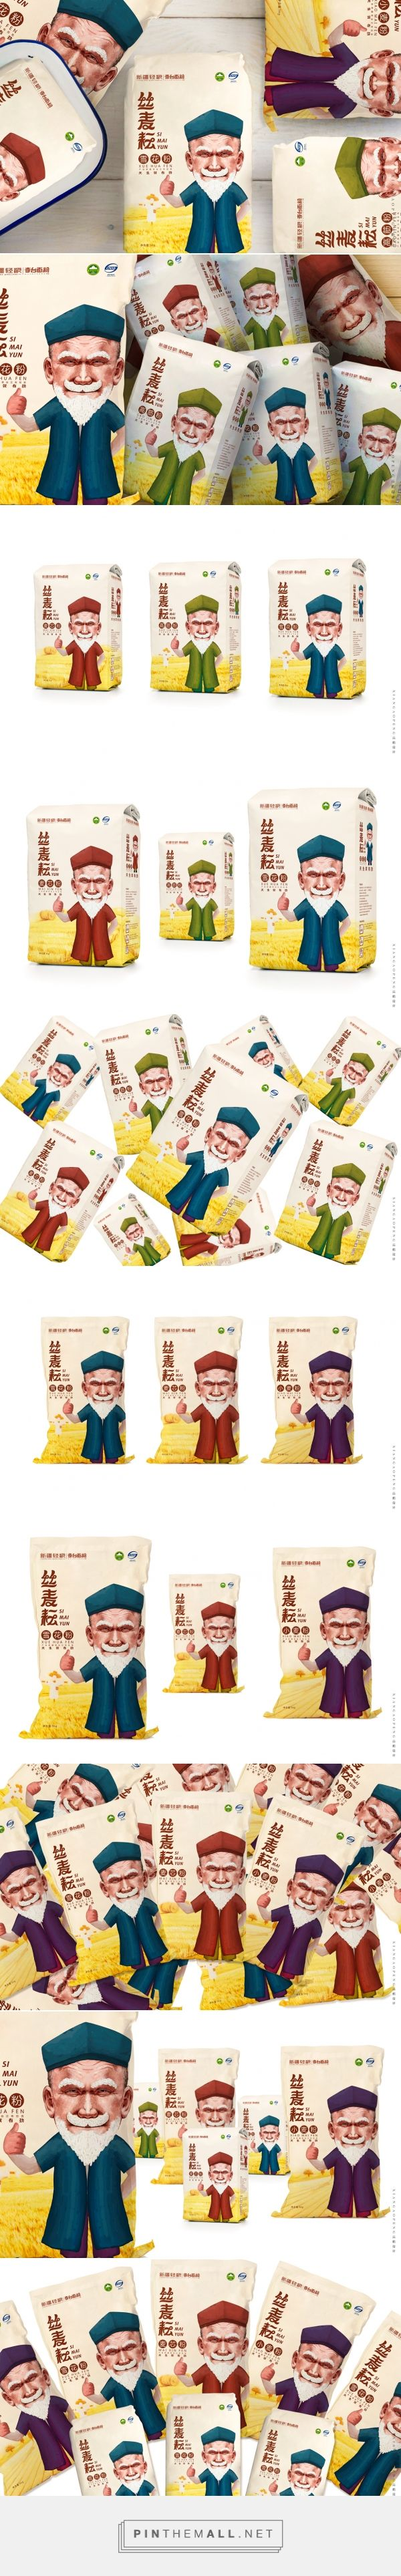 SIMAIYUN Wheat Flour - Packaging of the World - Creative Package Design Gallery - http://www.packagingoftheworld.com/2017/09/simaiyun-wheat-flour.html